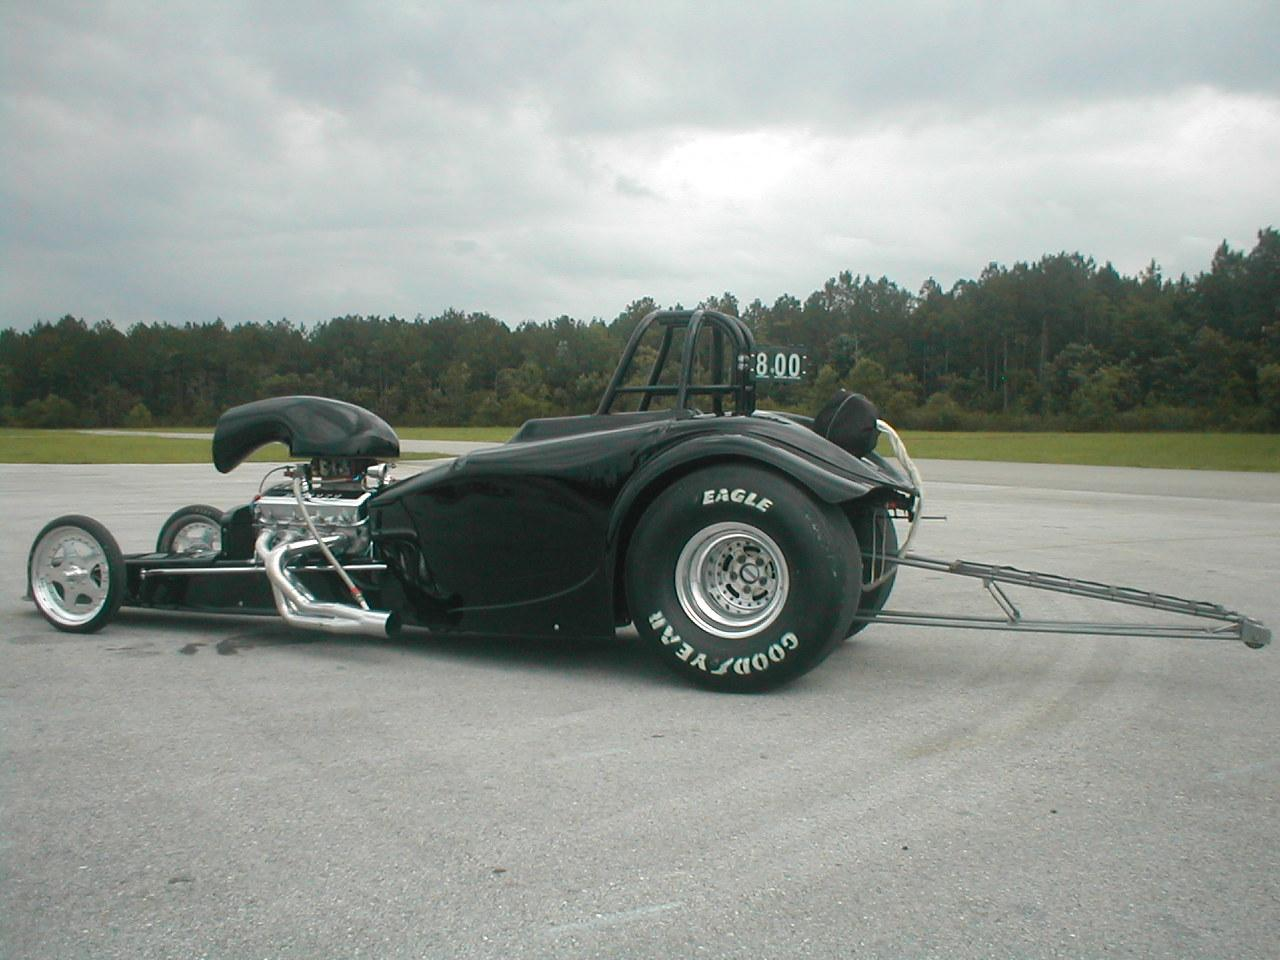 1998  StreetRod Bantam 32 bantam altered picture, mods, upgrades